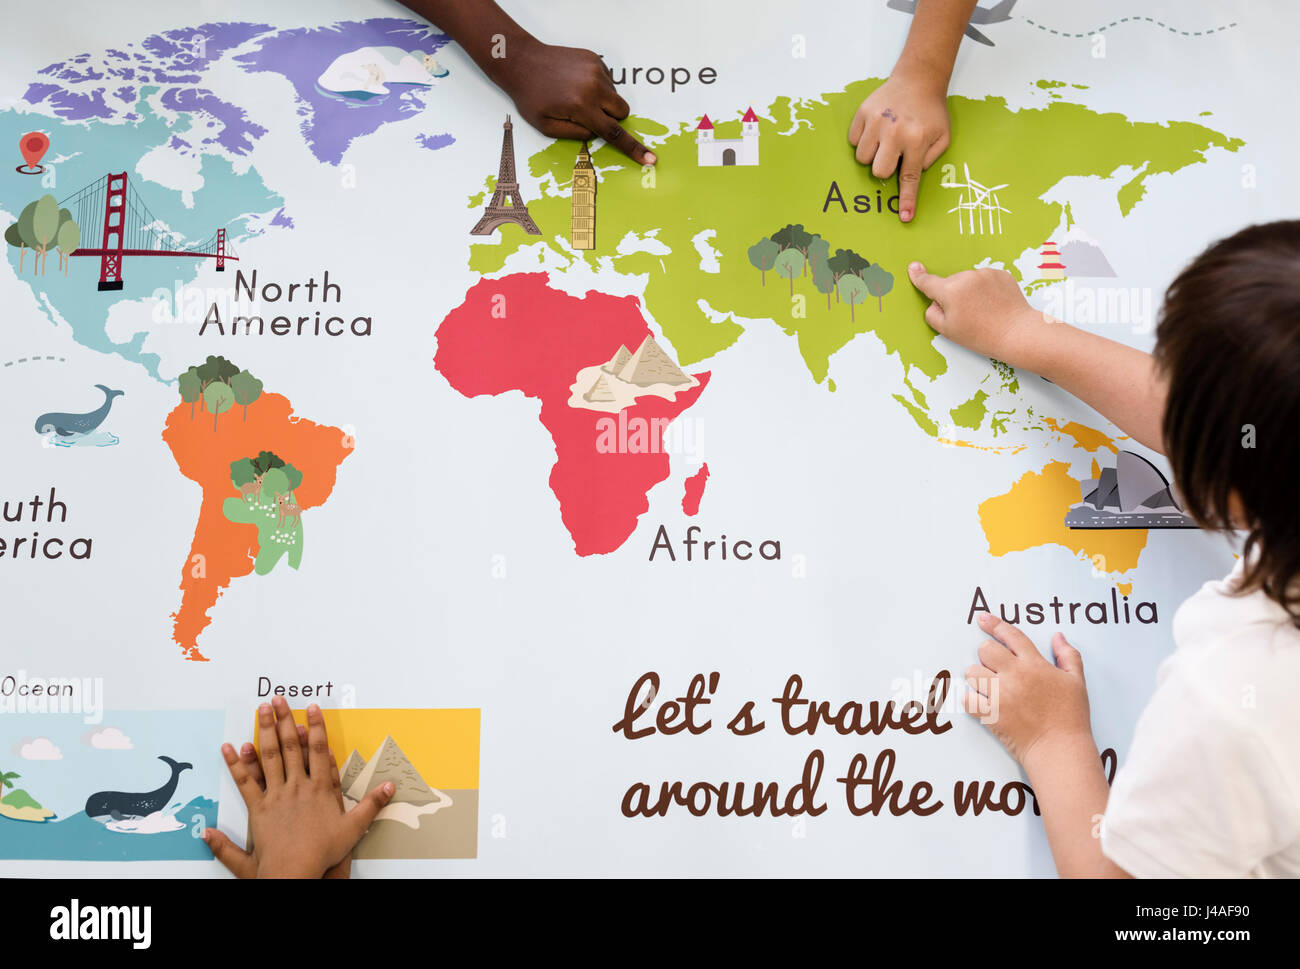 Kids learning world map with continents countries ocean geography kids learning world map with continents countries ocean geography gumiabroncs Gallery